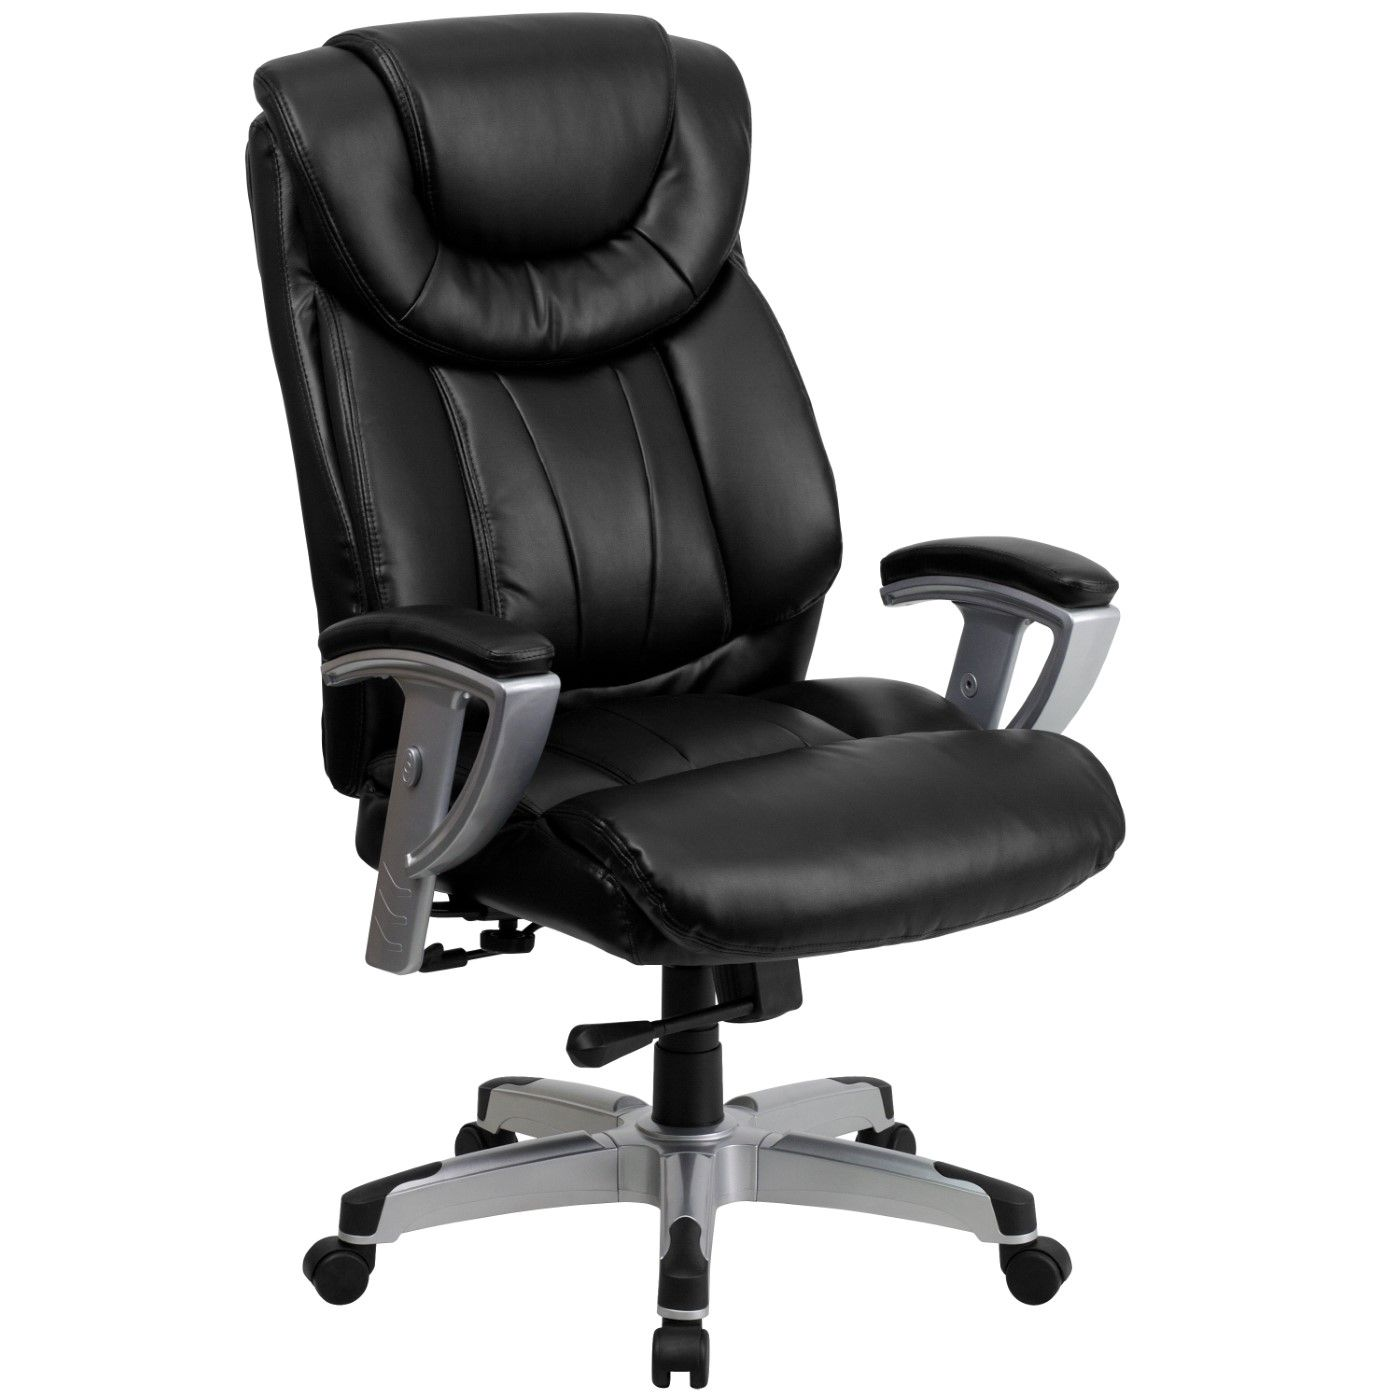 TOUGH ENOUGH Series Big & Tall 400 lb. Rated Black LeatherSoft Executive Ergonomic Office Chair with Silver Adjustable Arms